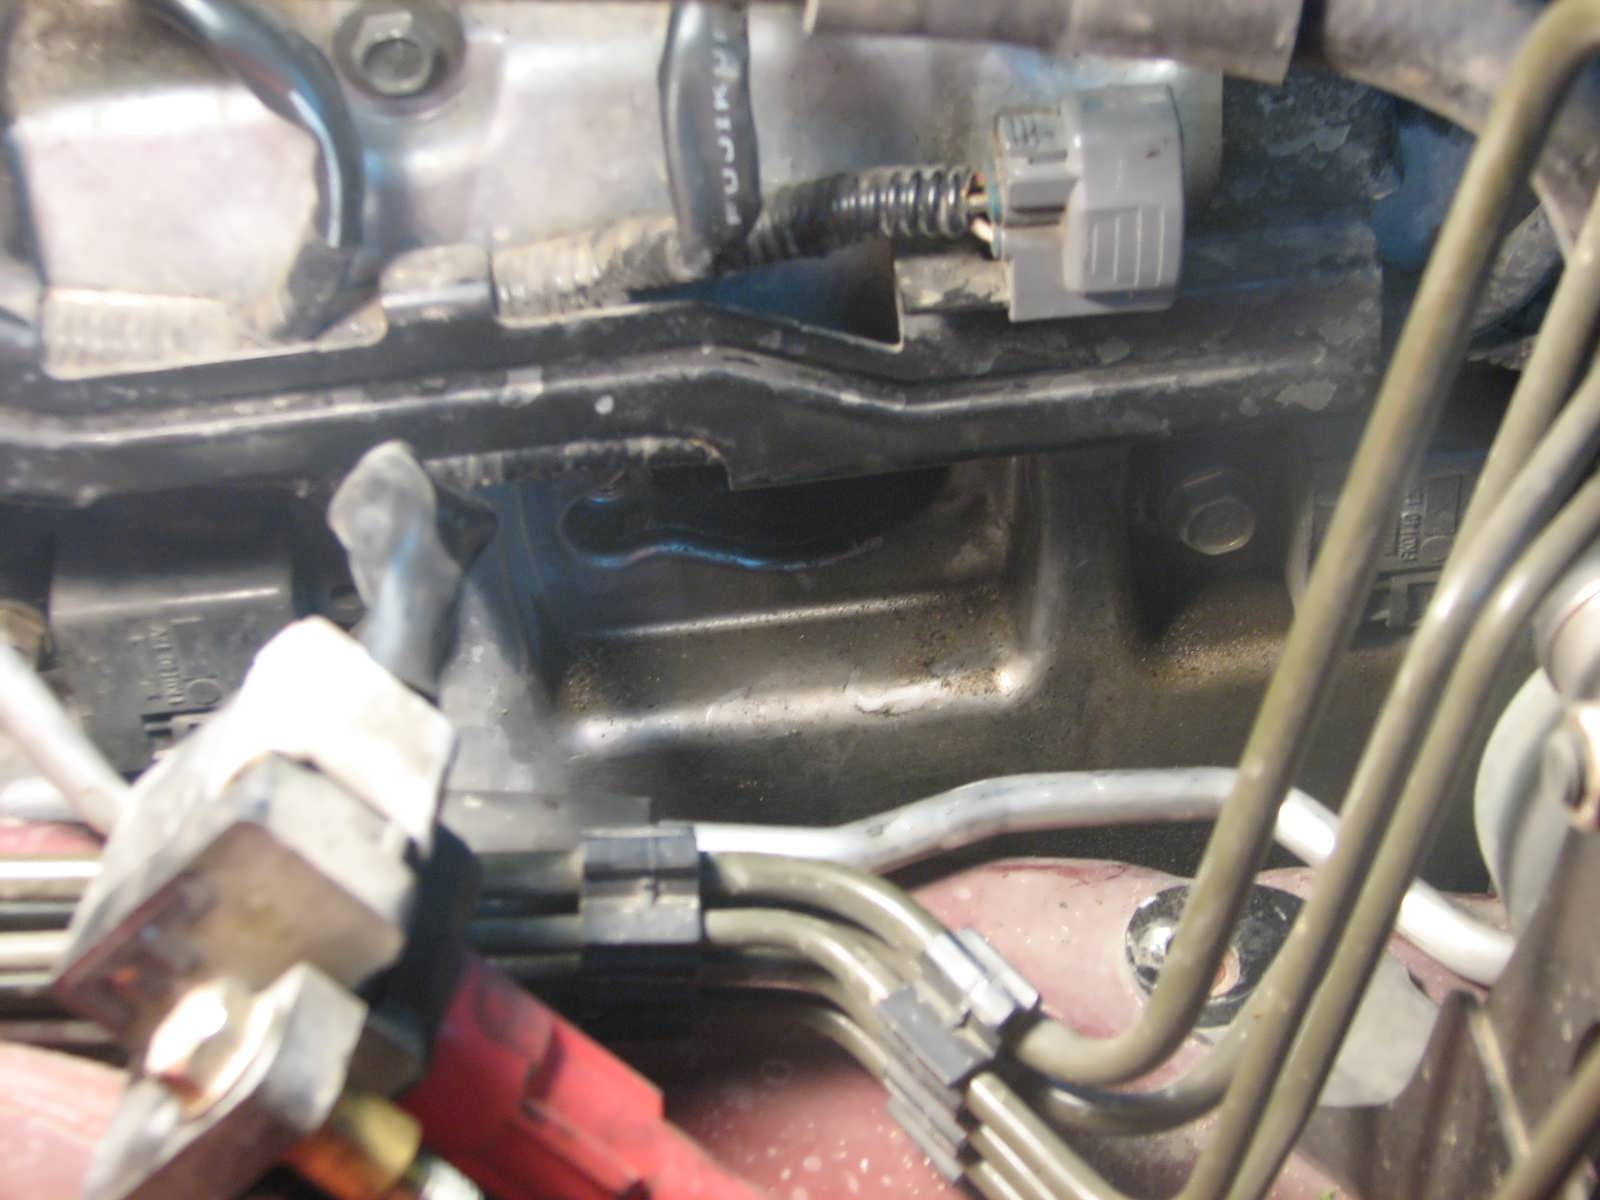 2002 Subaru Outback H6 30 Spark Plug Installation Classic Cars 2000 Pcv Valve Location Below This Is The Drivers Side Bottom Of Cover Notice Oil Drops Hanging From It These Little Drip Onto Exhaust Pipe And